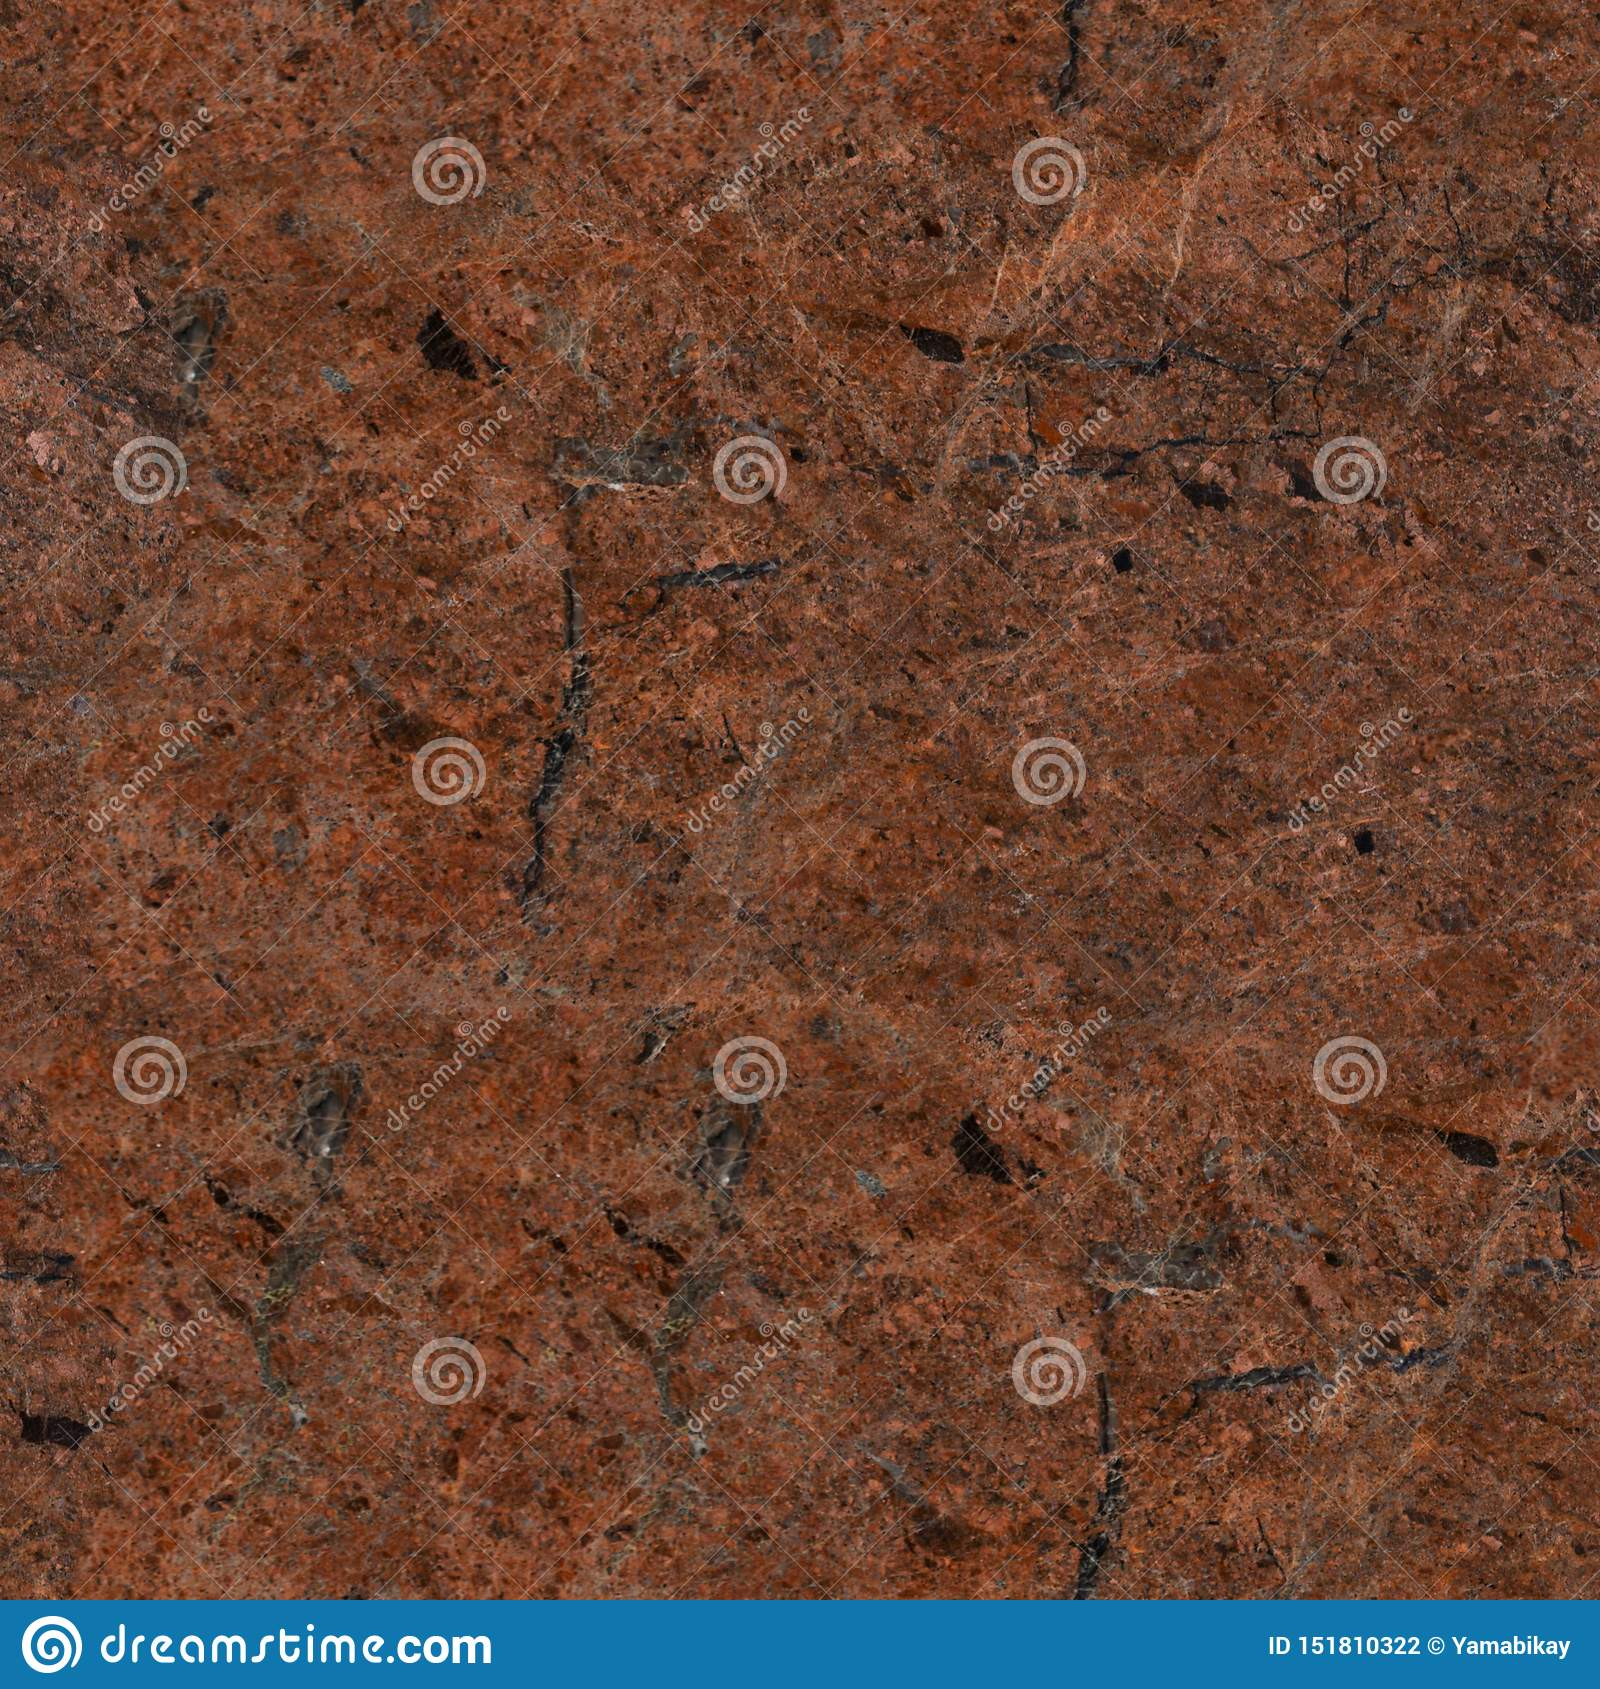 Contrast Brown Granite Texture With Dark Cracks Seamless Square Background Tile Ready Stock Photo Image Of Architecture Gray 151810322